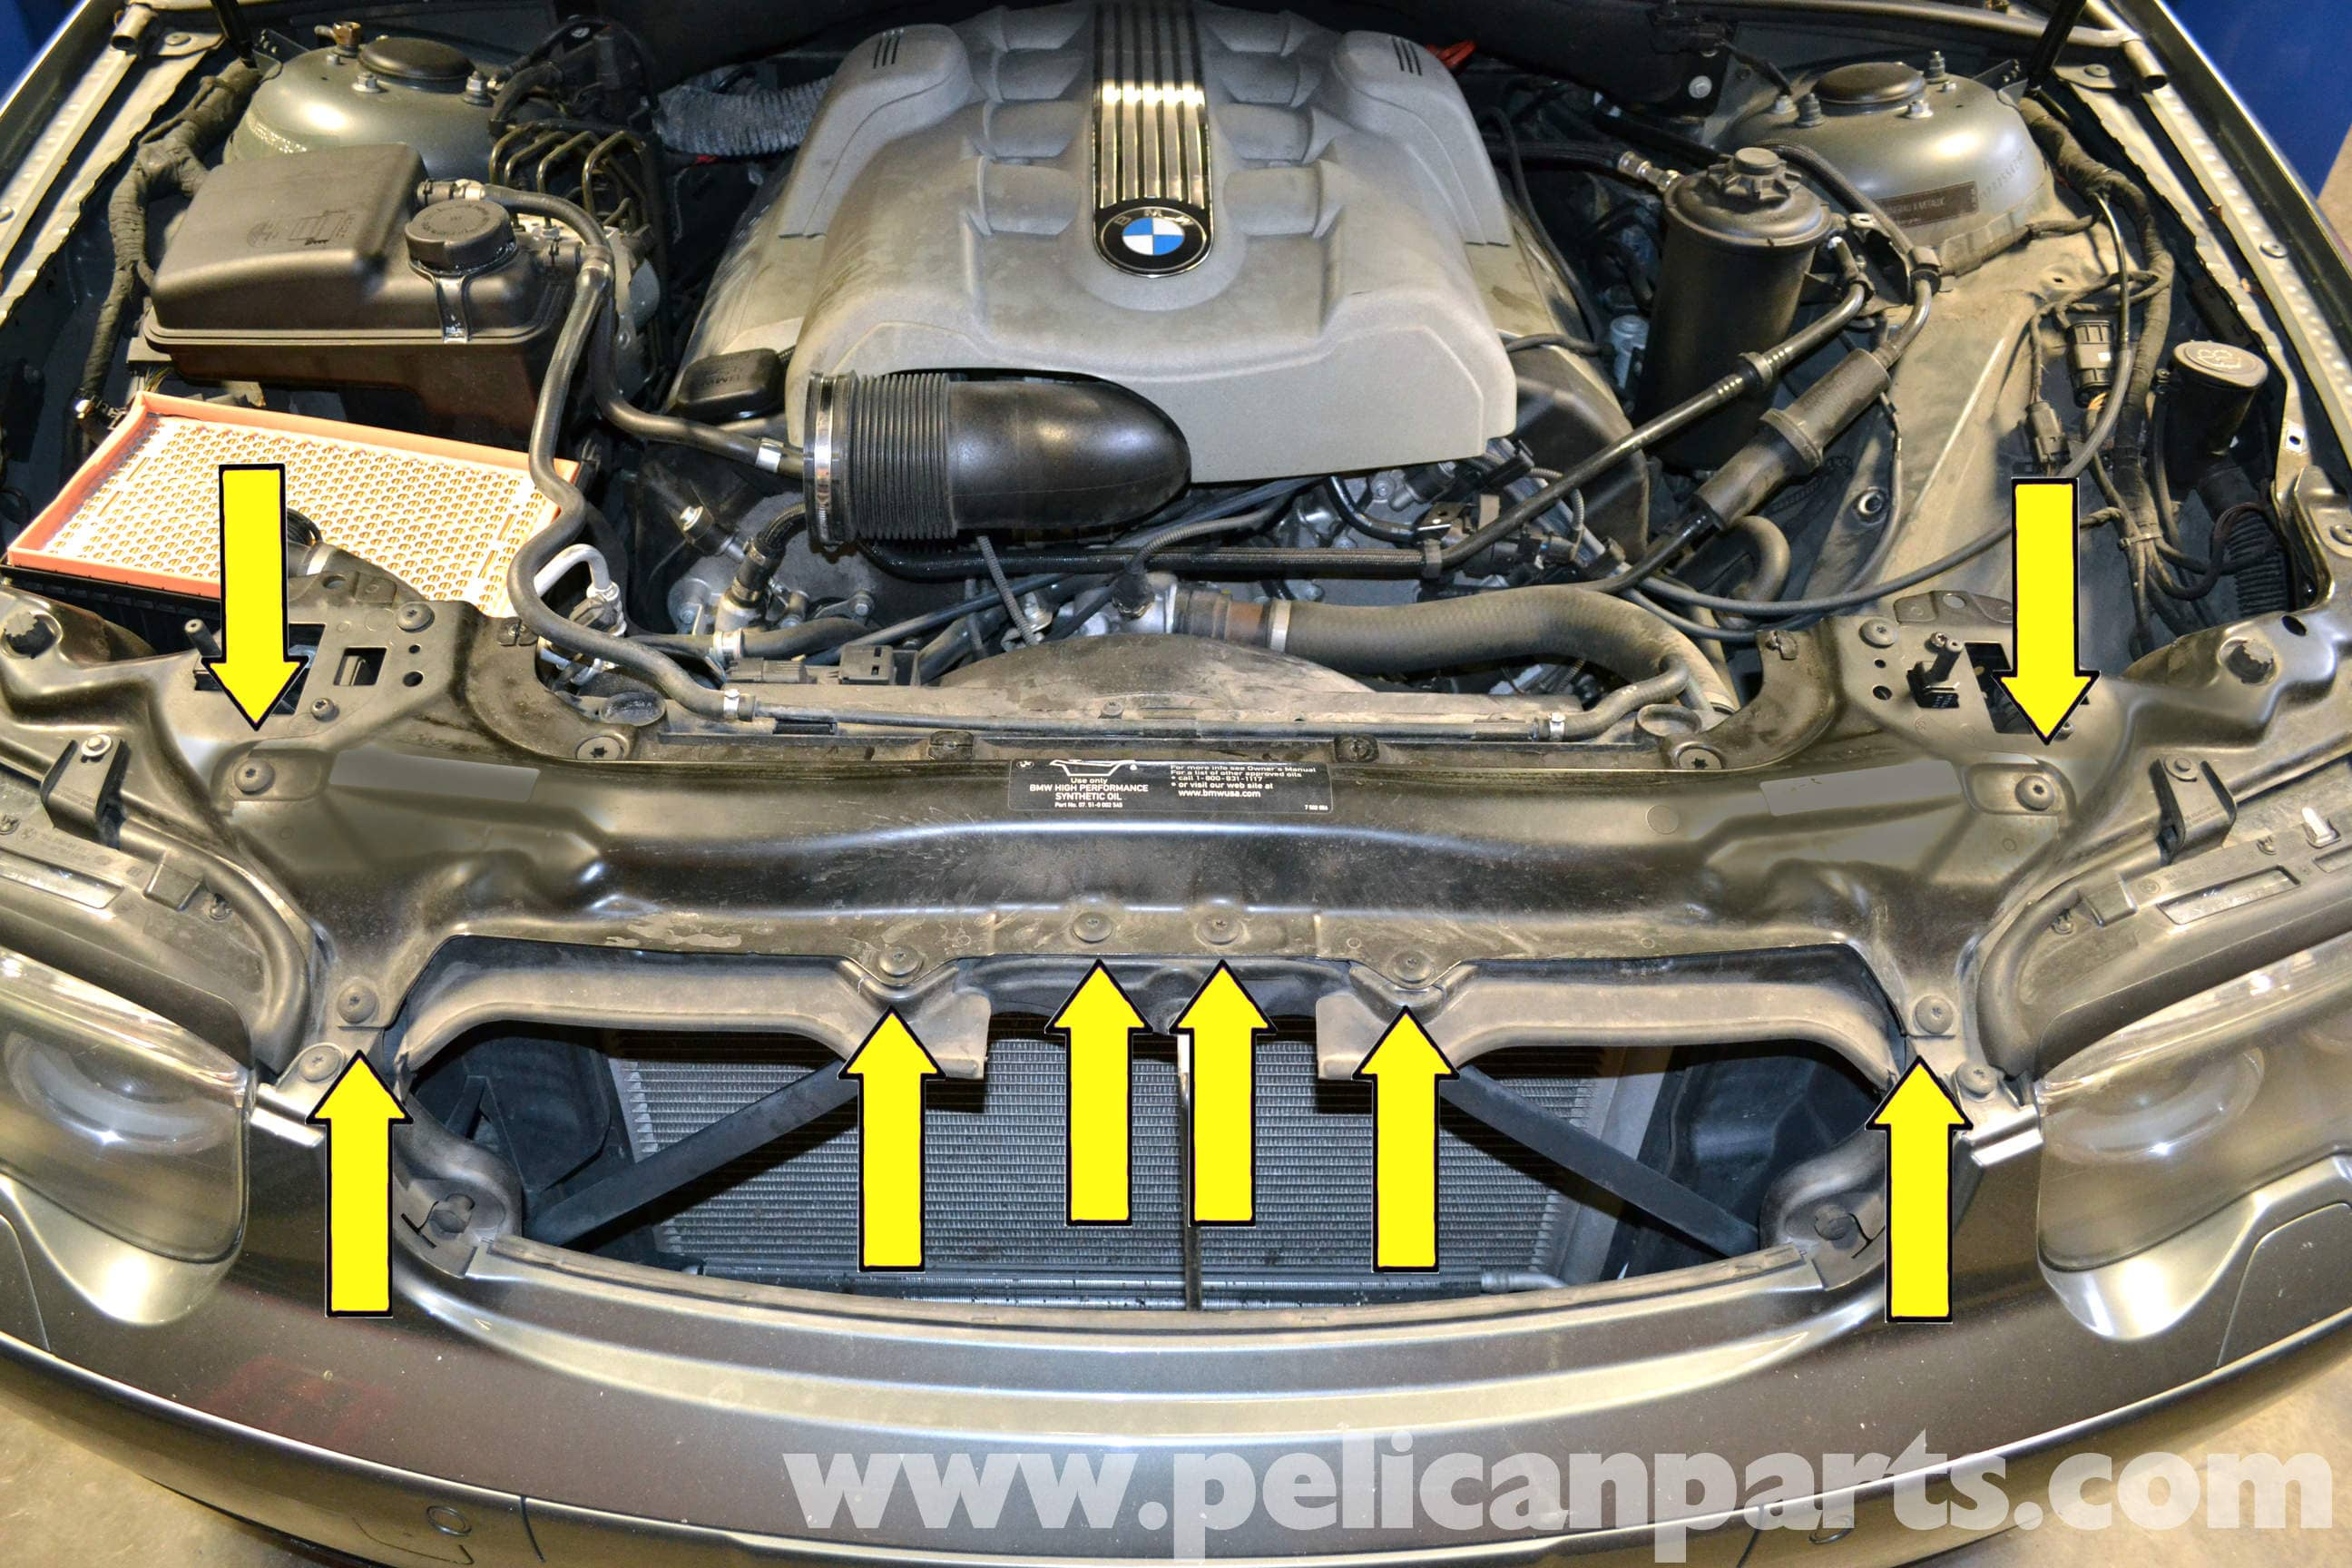 Ac Hoist Wiring Diagram Bmw The Infamous Alternator Bracket Oil Leak On The E65